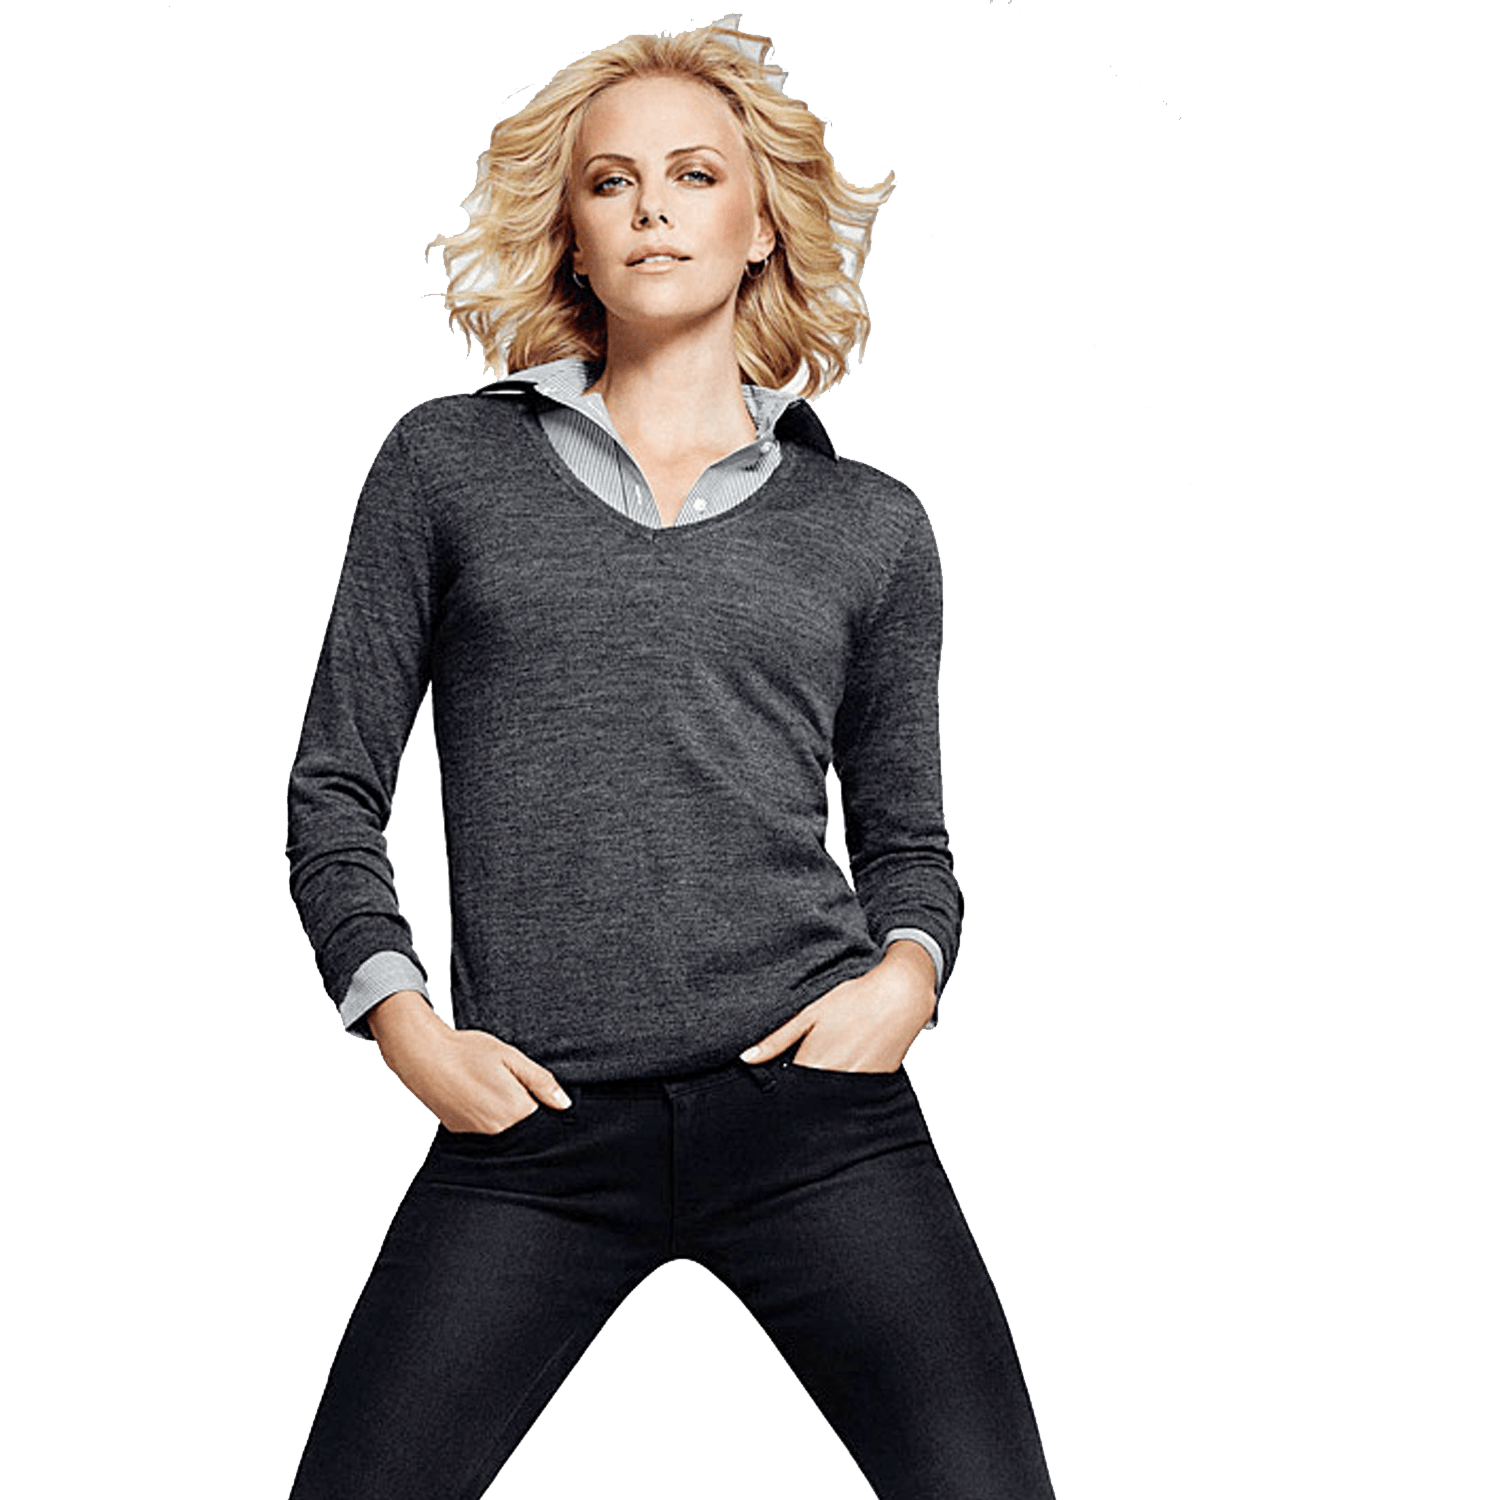 Charlize Theron Transparent Image PNG Image